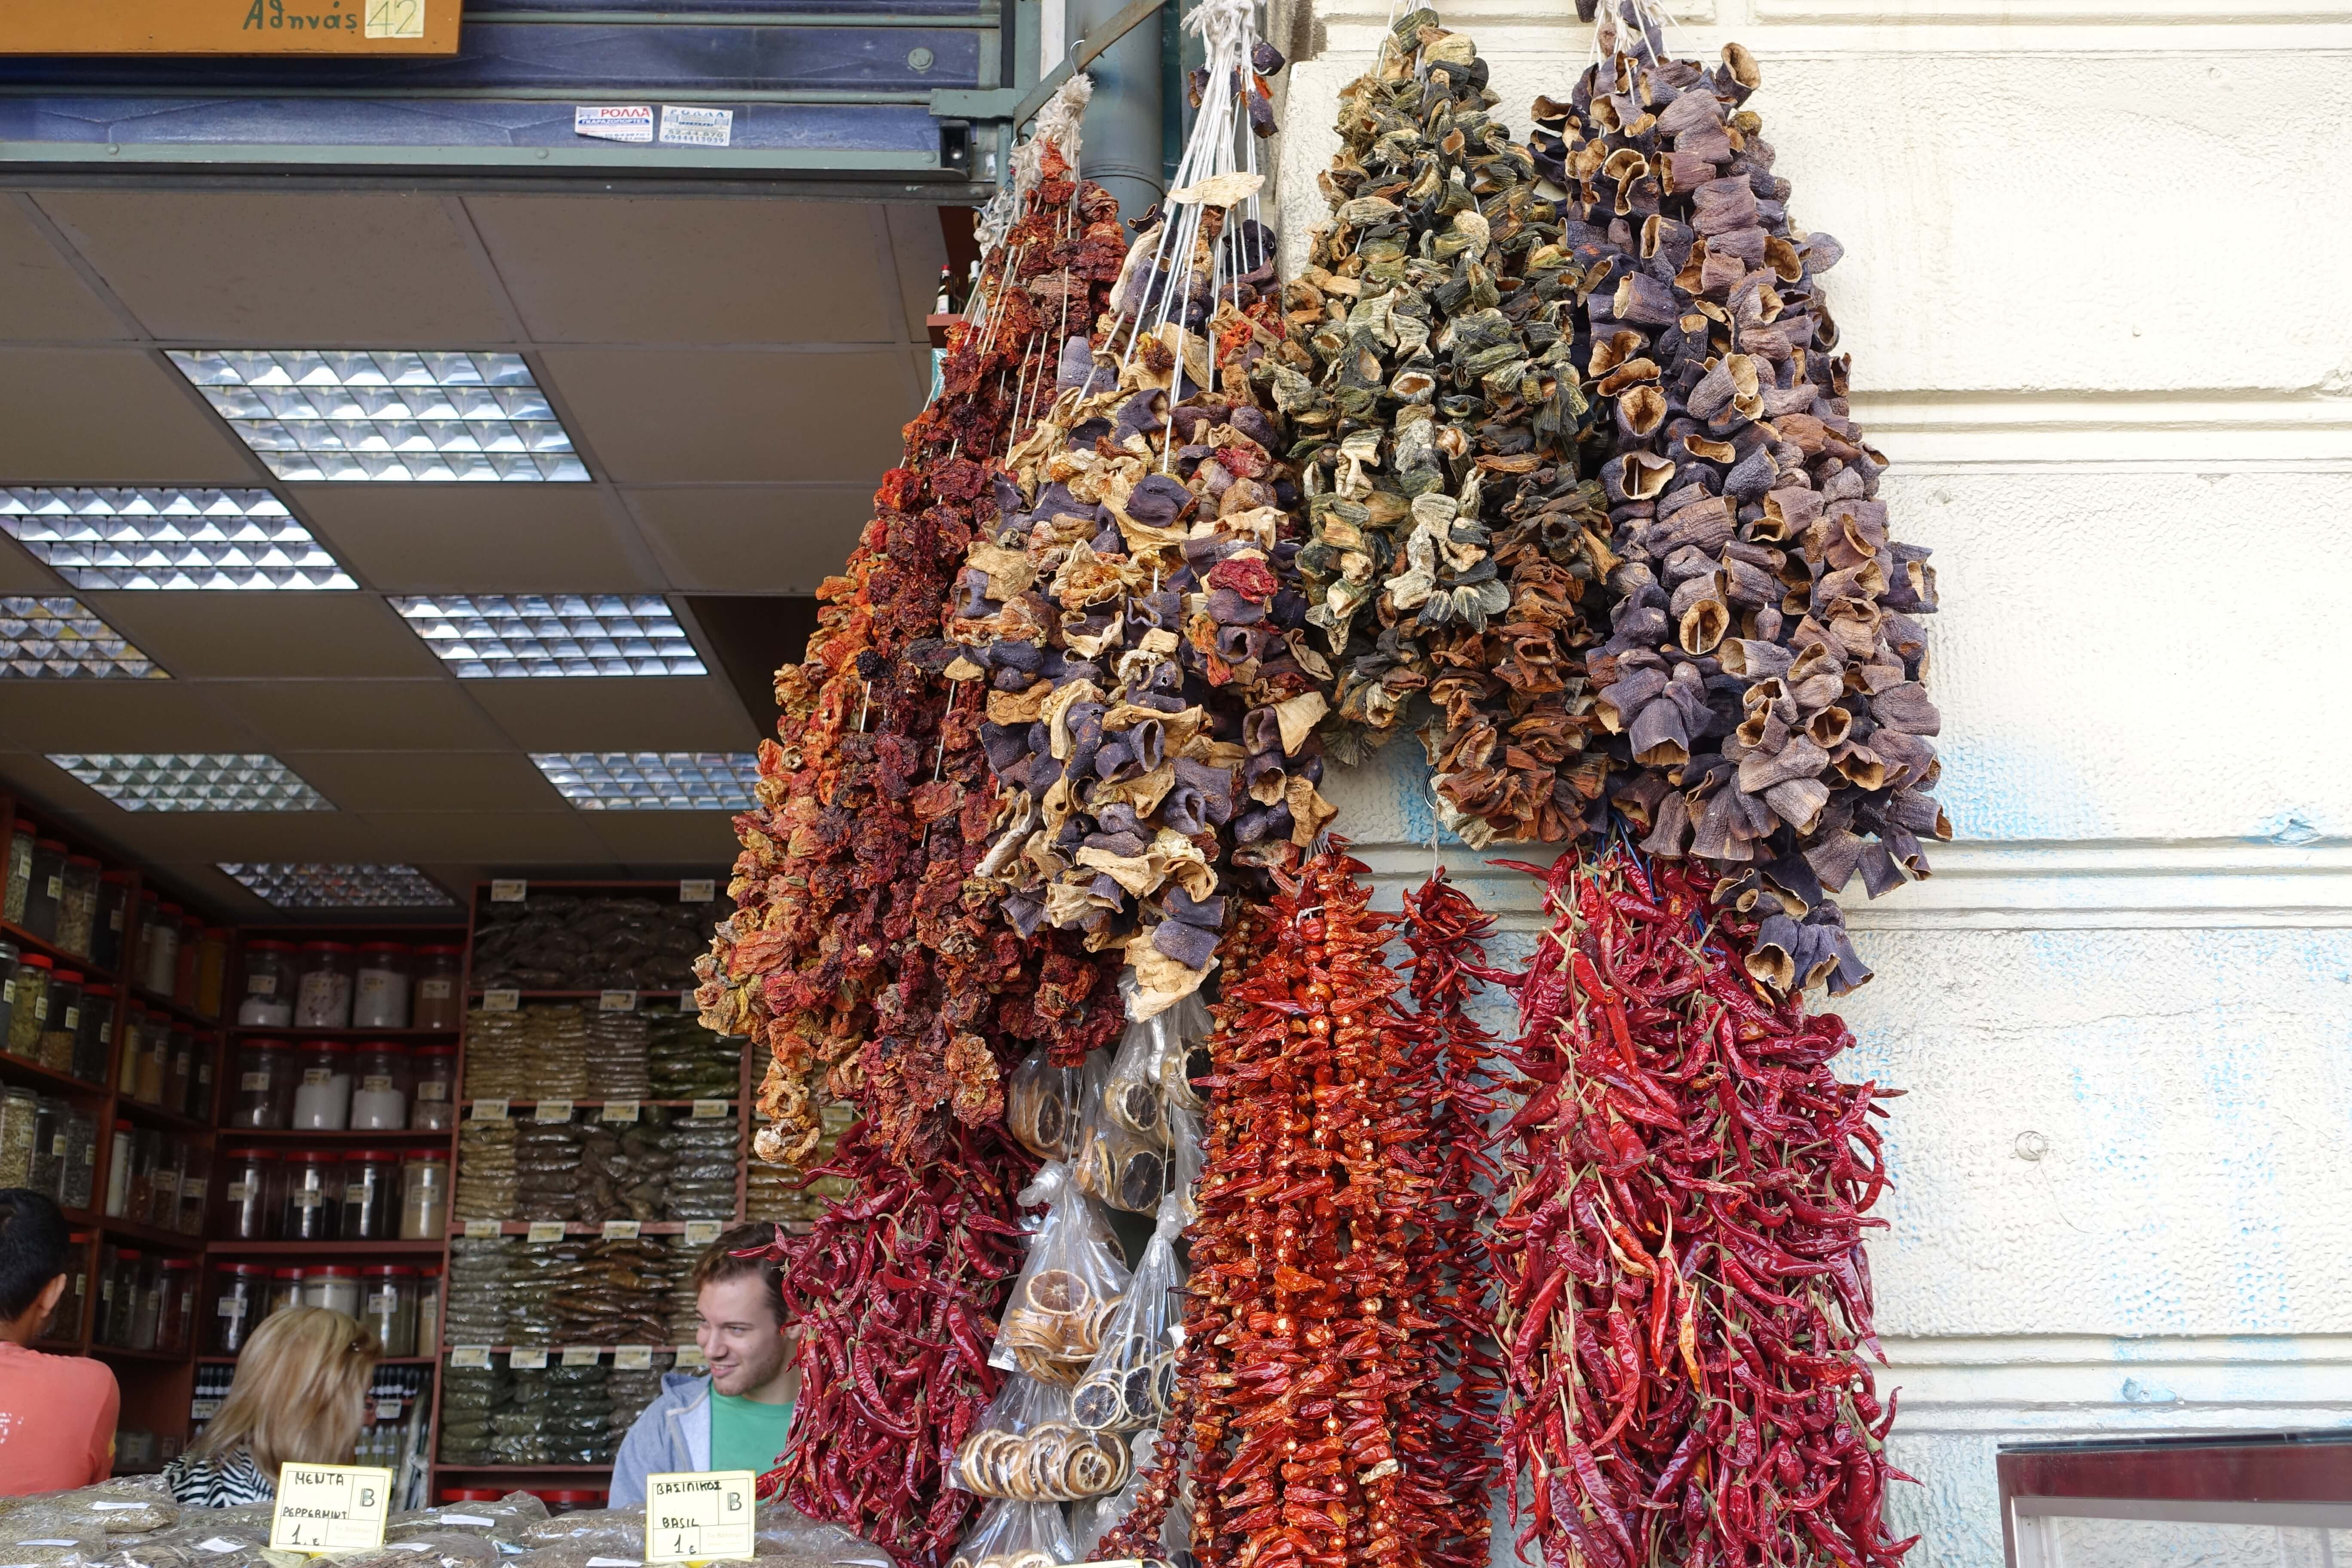 bundles of dried vegetables in a Greek market